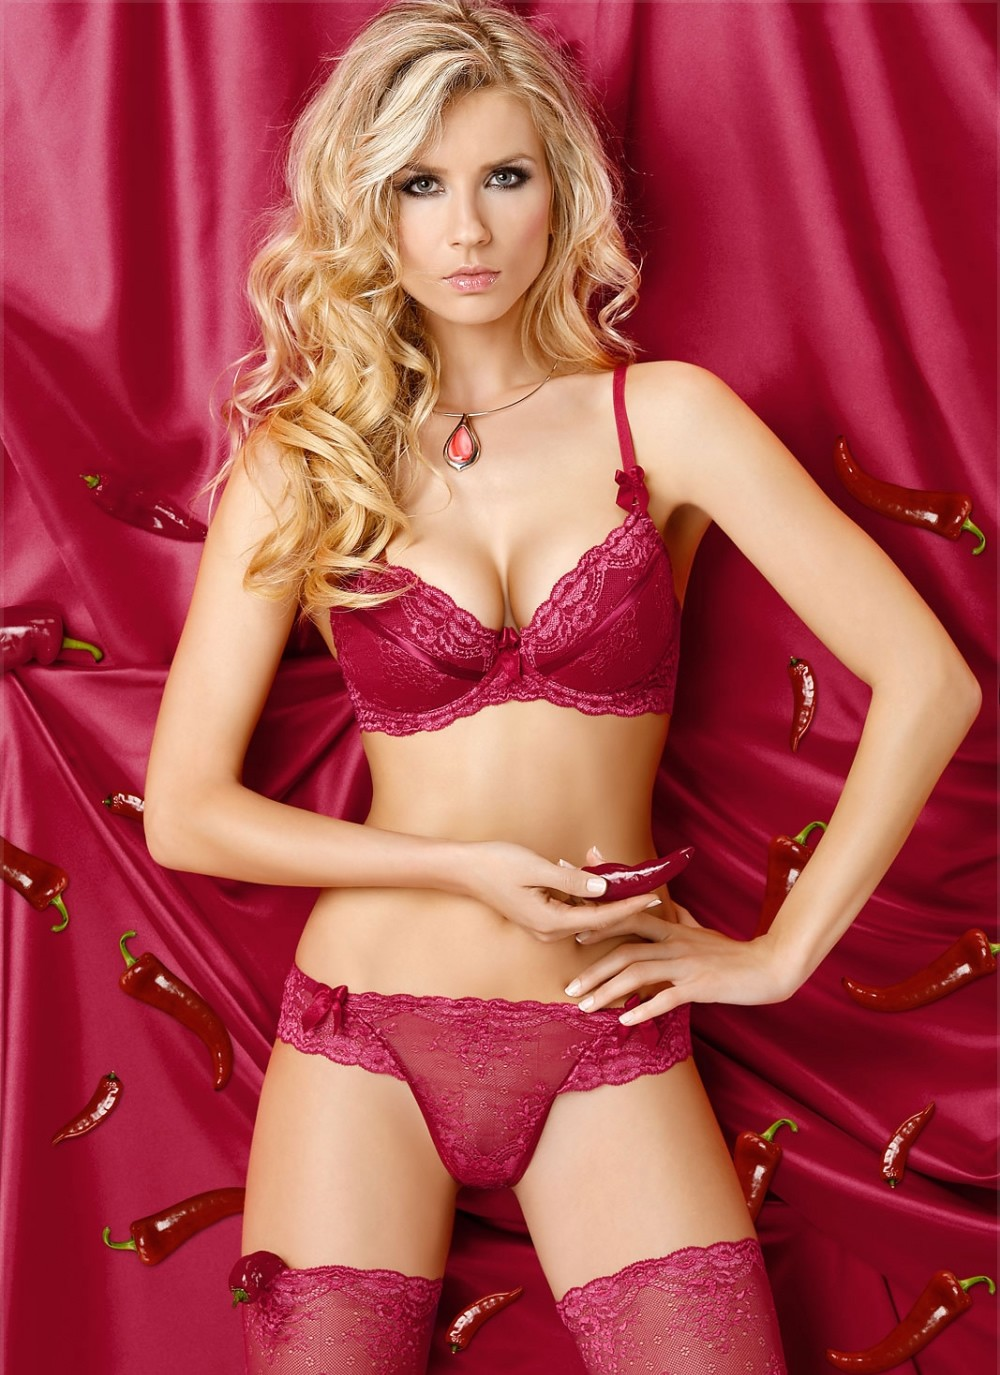 Seduction Push Up Bra